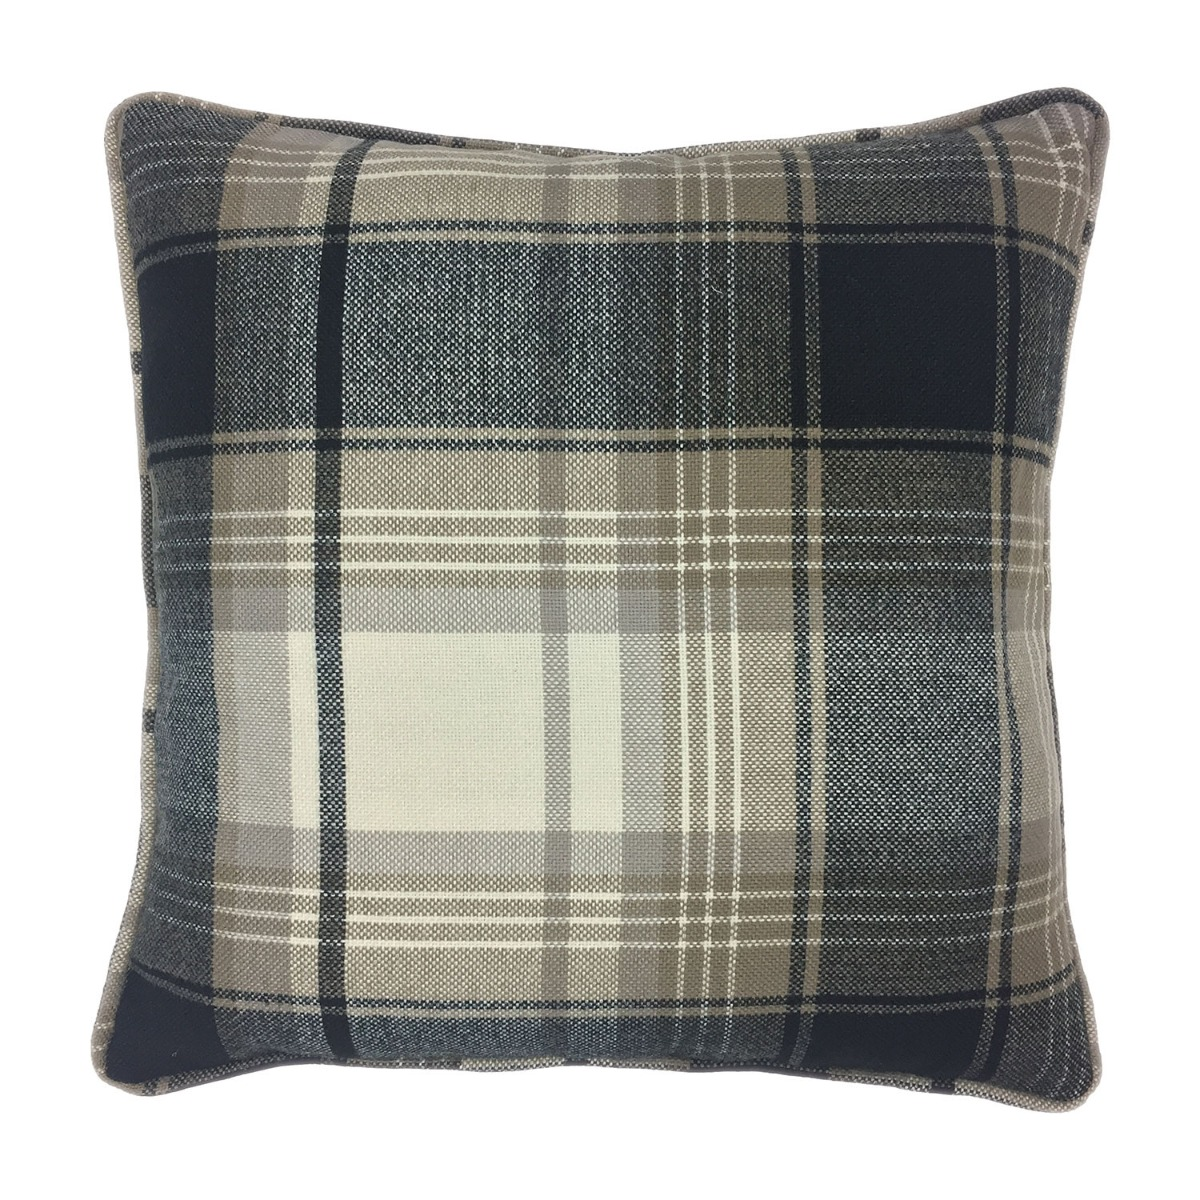 Balmoral Charcoal Check Filled Square Cushion